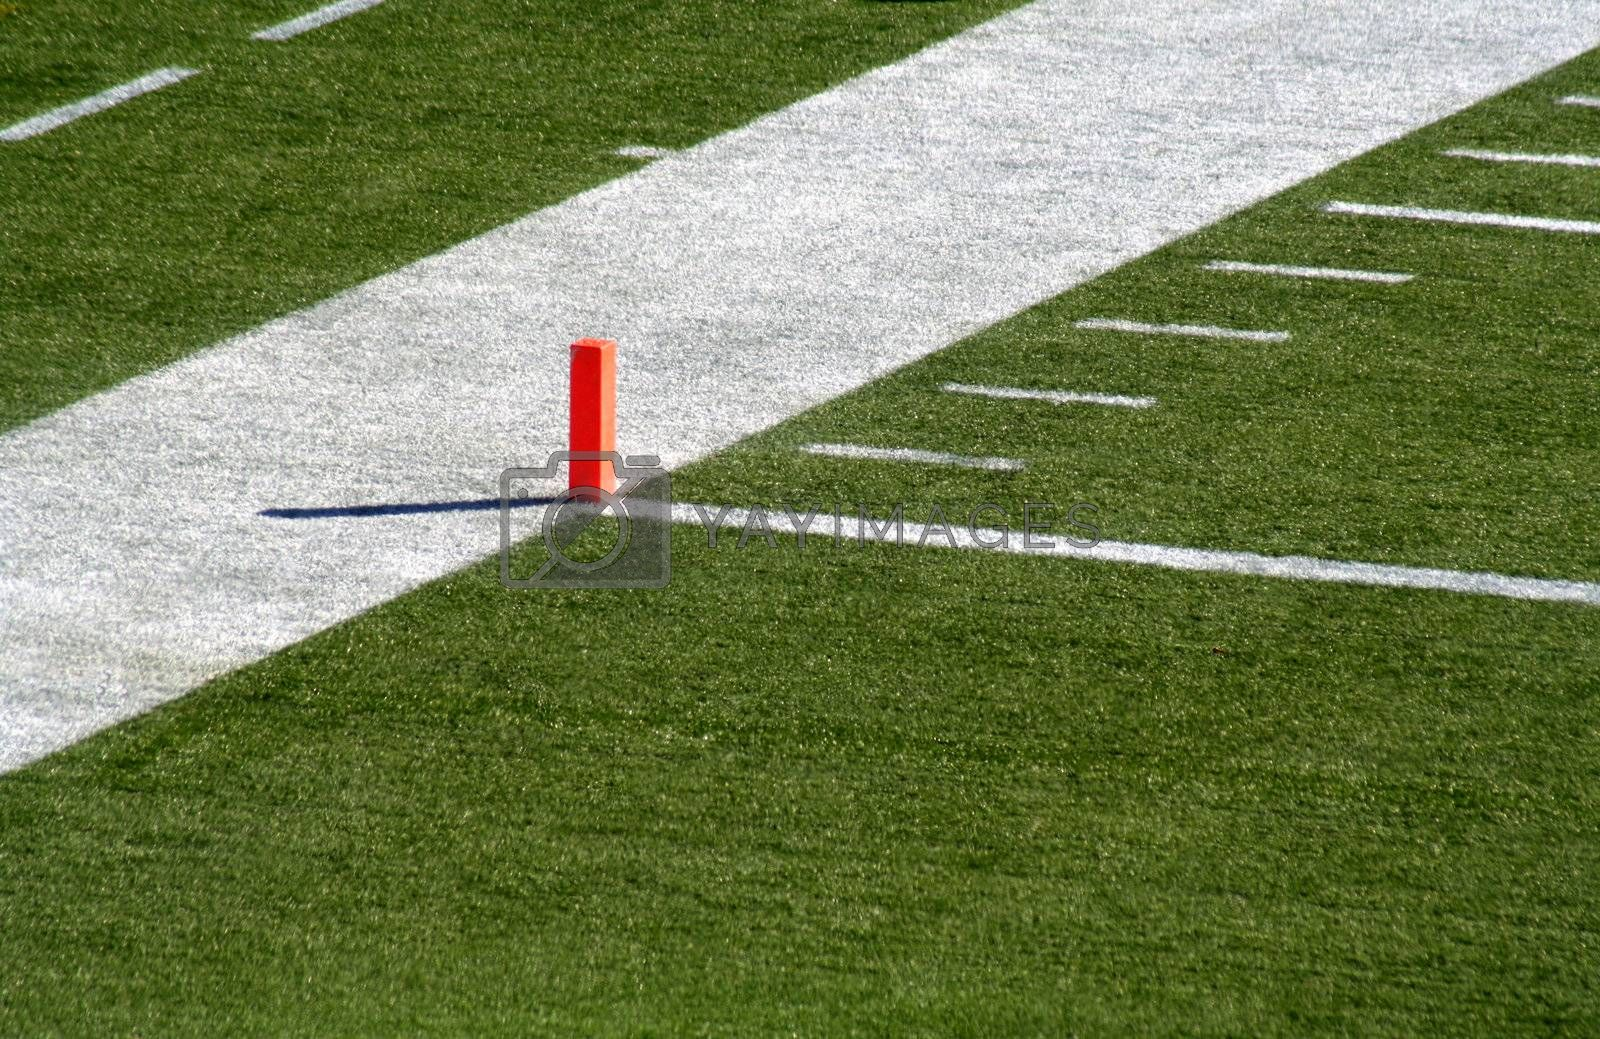 A shot of the endzone showing the goal line and the orange marker.